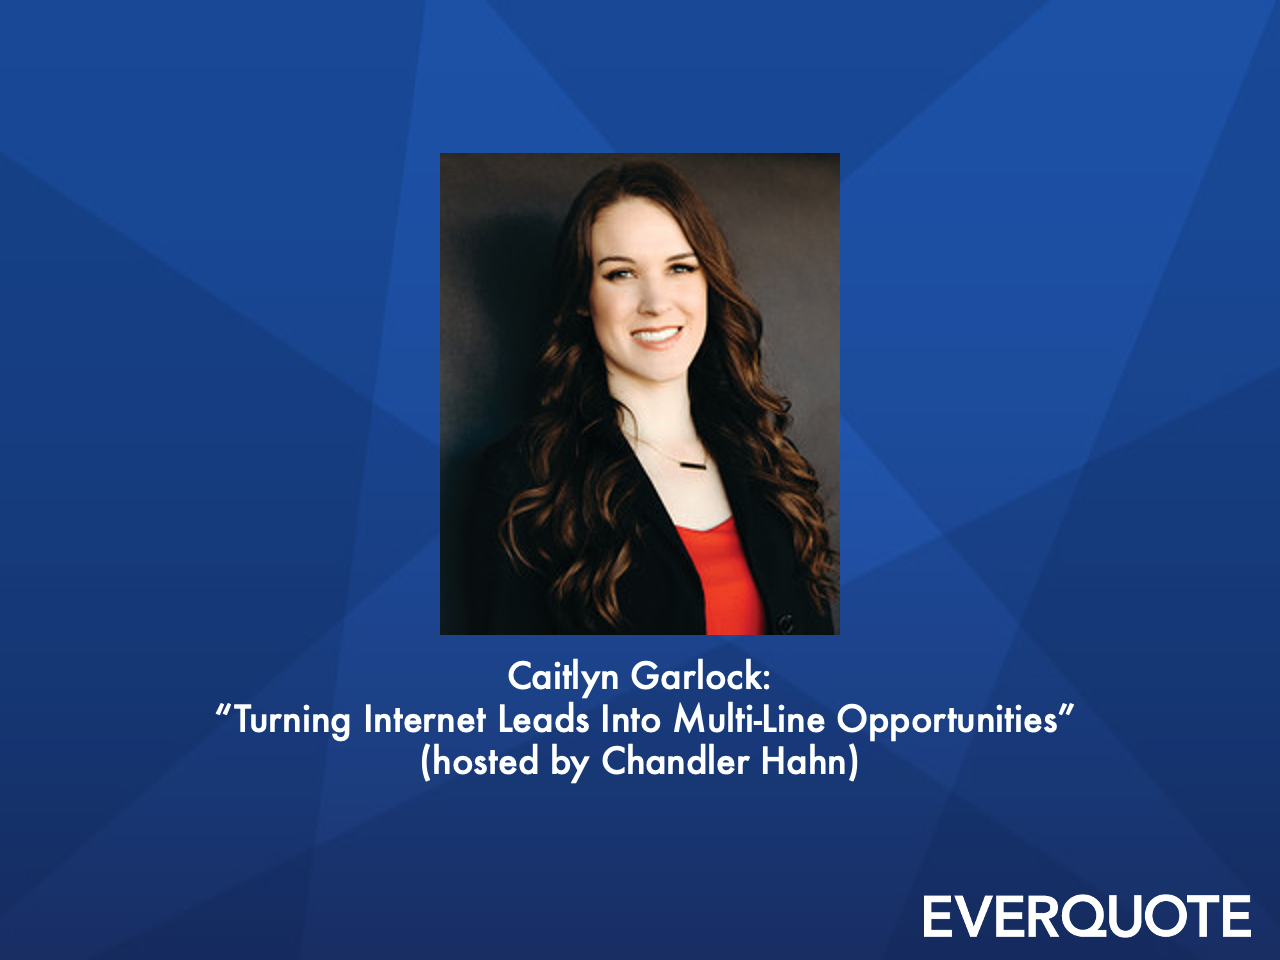 Turning Internet Leads Into Multi-Line Opportunities with Caitlyn Garlock